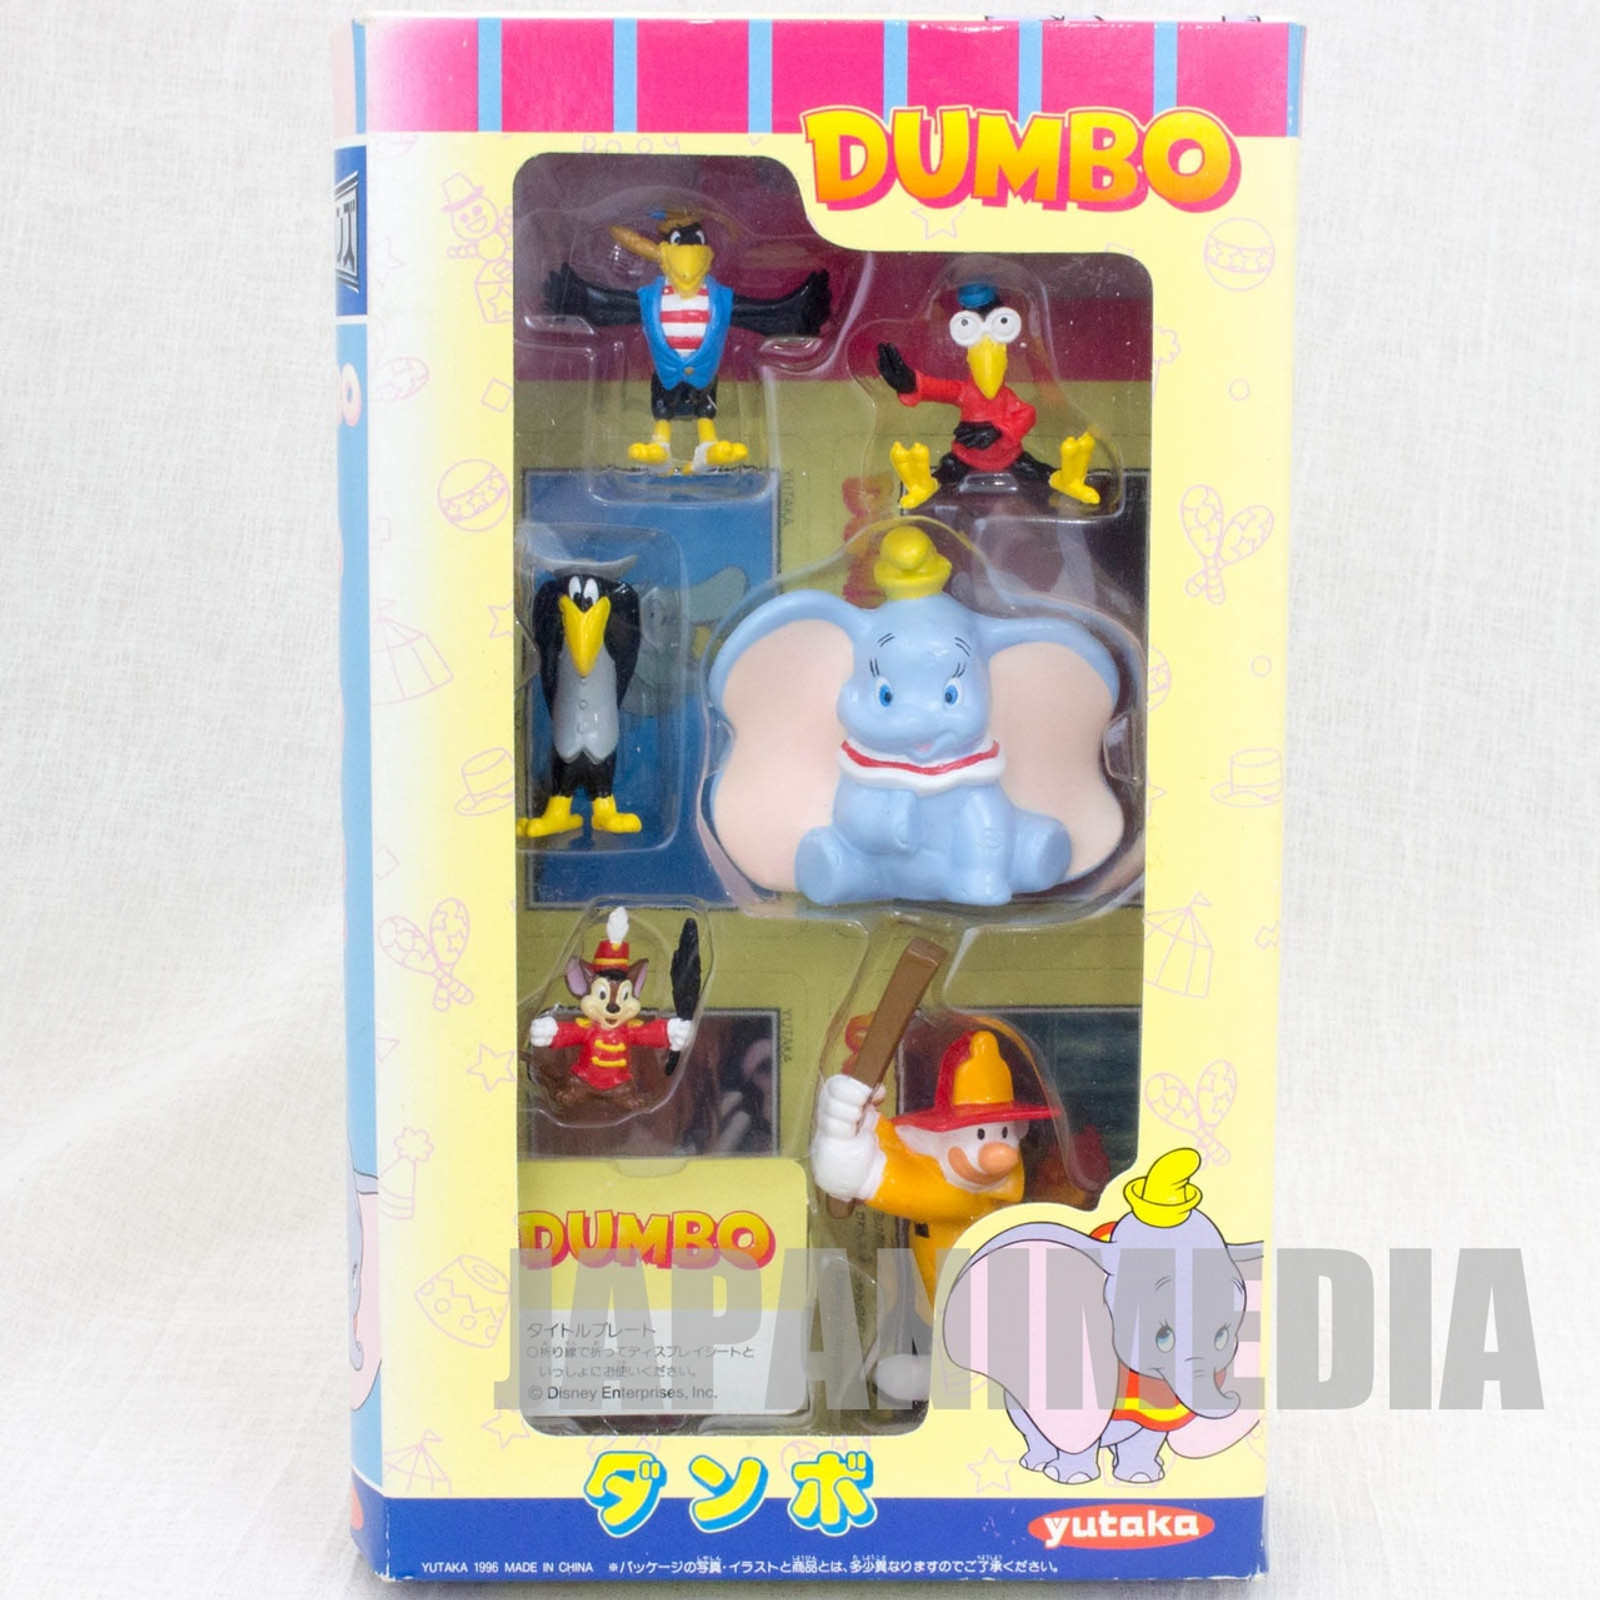 RARE! Disney DUMBO Movie Friends Mini Figure Set Yutaka JAPAN